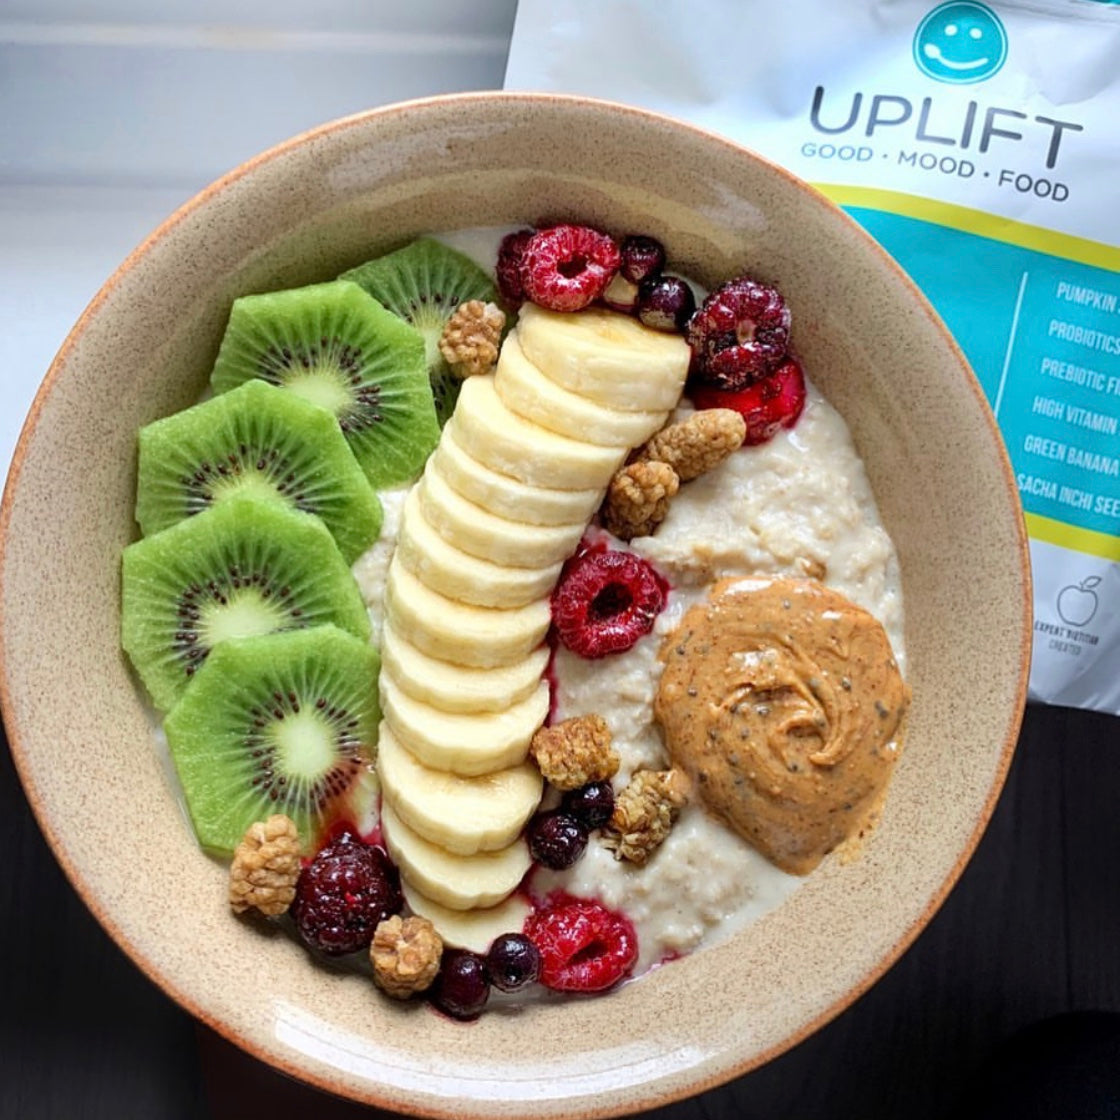 upliftfood daily uplifter prebiotic supplement gut health psychobiotic @wakeupandsmelltherosay